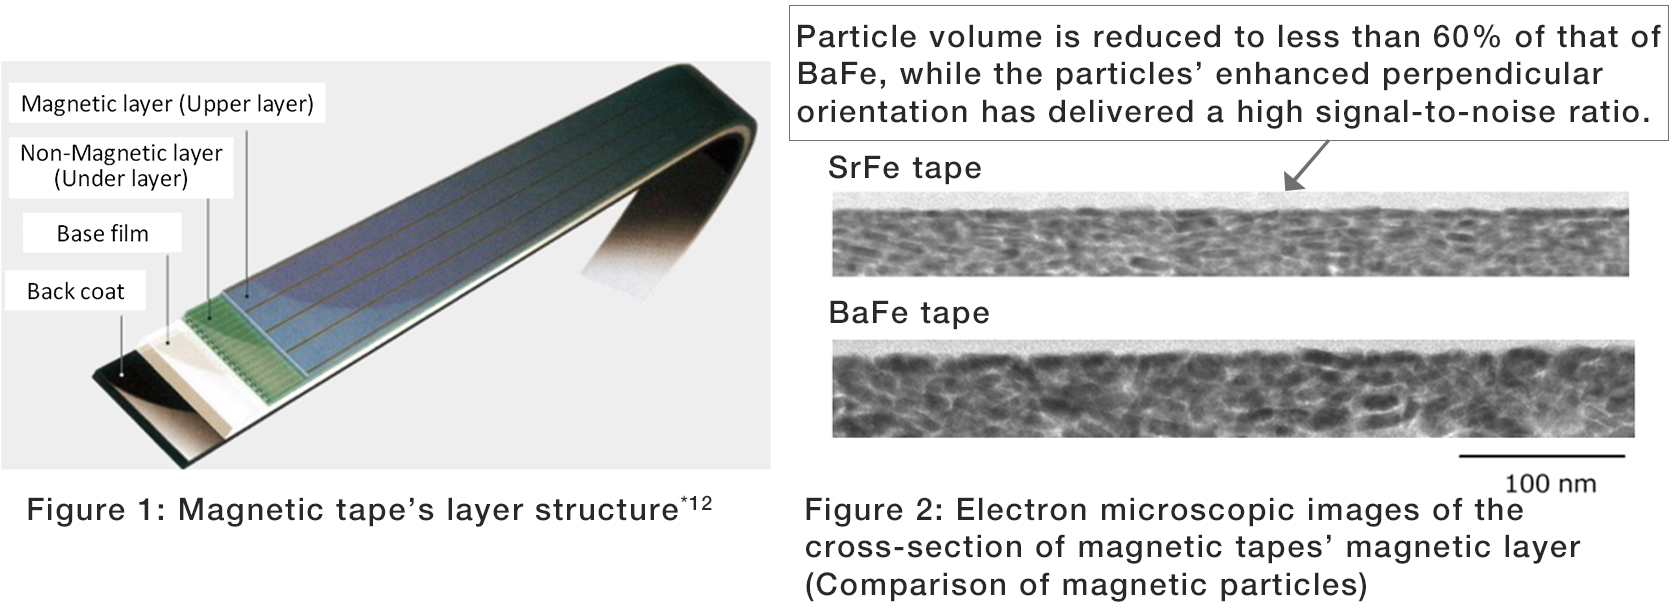 Figure 1: Magnetic tape's layer structure, Figure 2: Electron microscopic images of the cross-section of magnetic tapes' magnetic layer